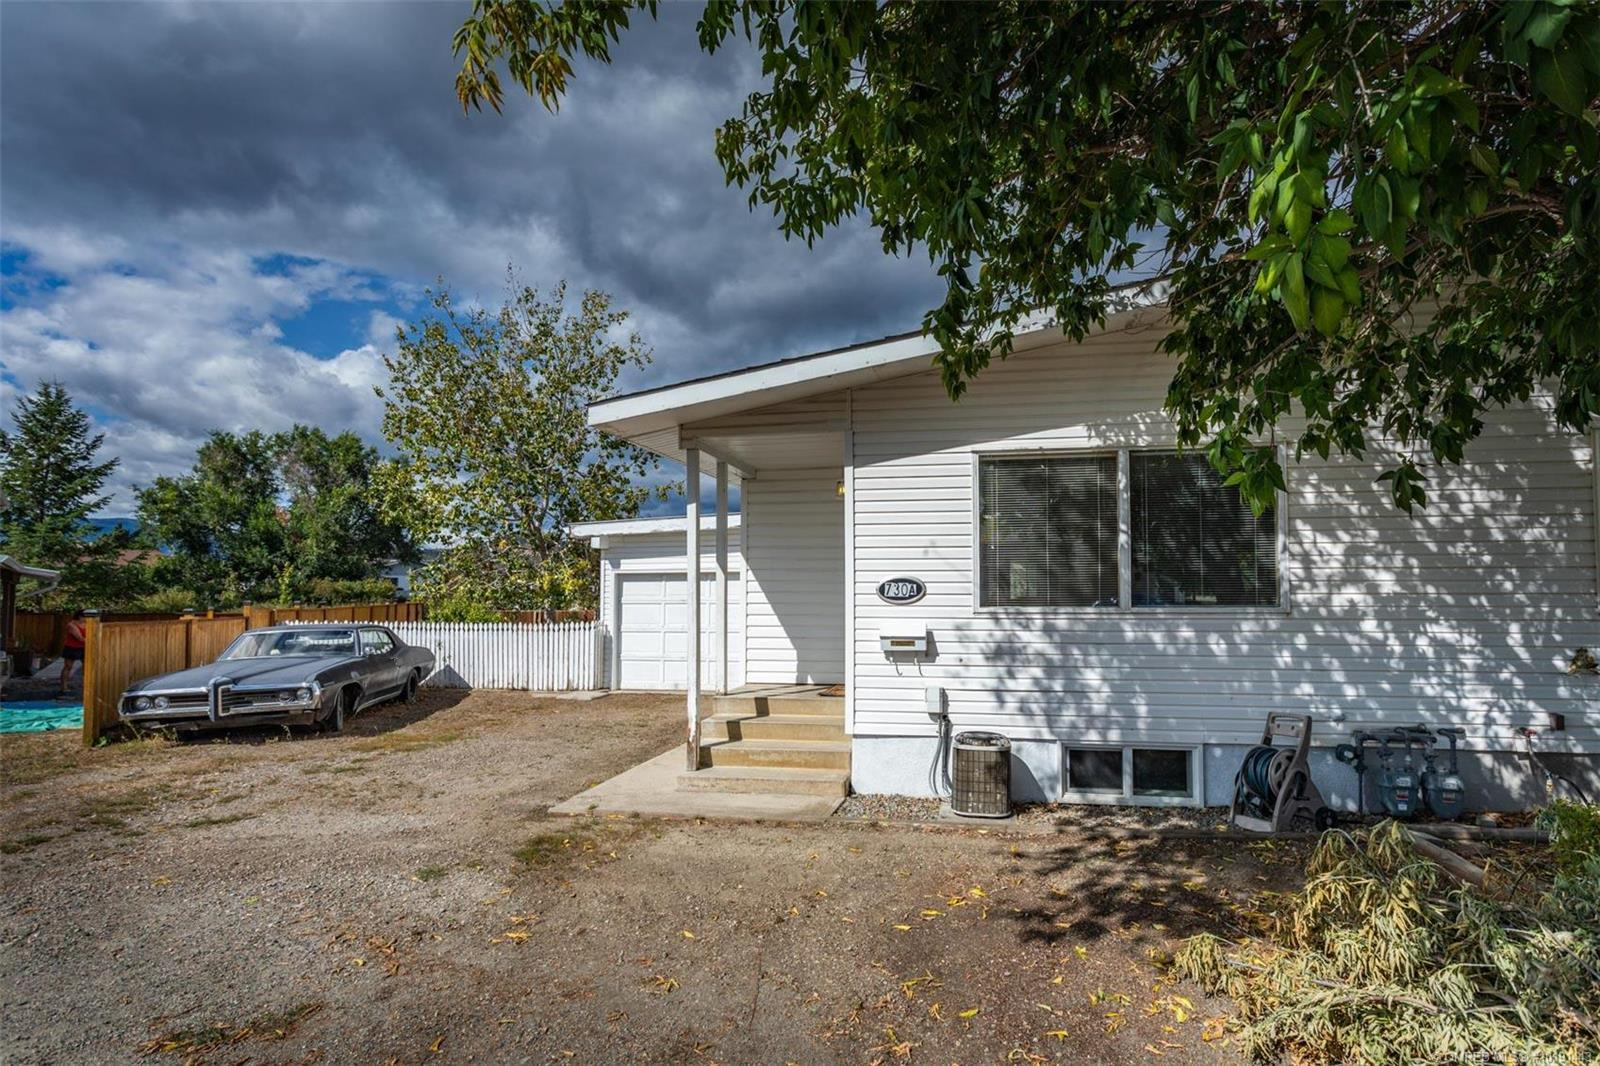 Removed: A - 730 Larry Road, Kelowna, BC - Removed on 2019-10-10 05:54:16